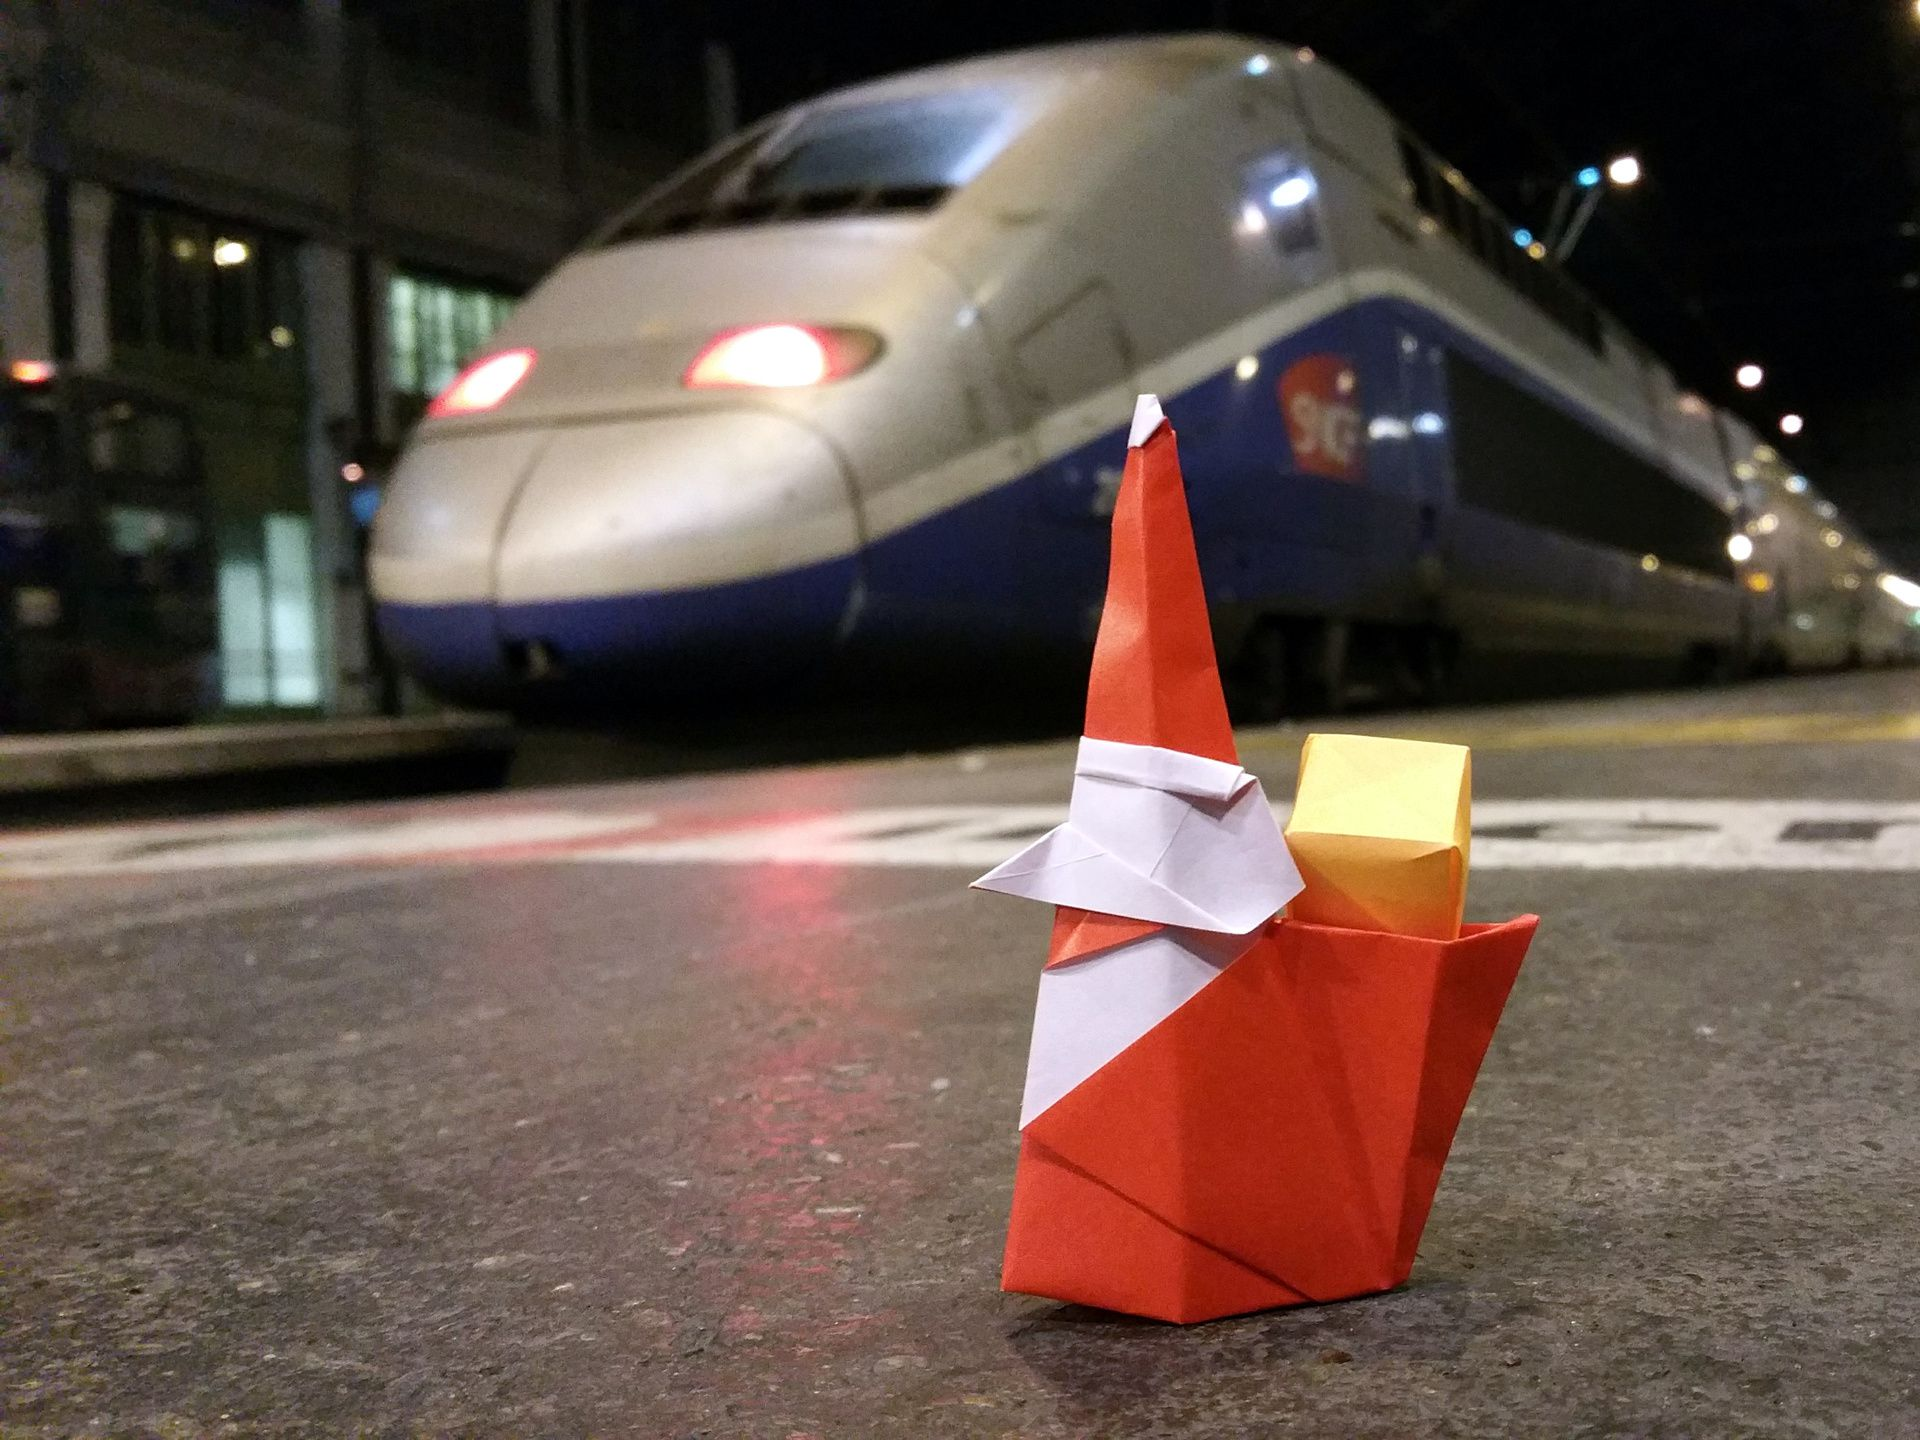 Origami Smiling Santa Claus Takes The TGV French High Speed Train